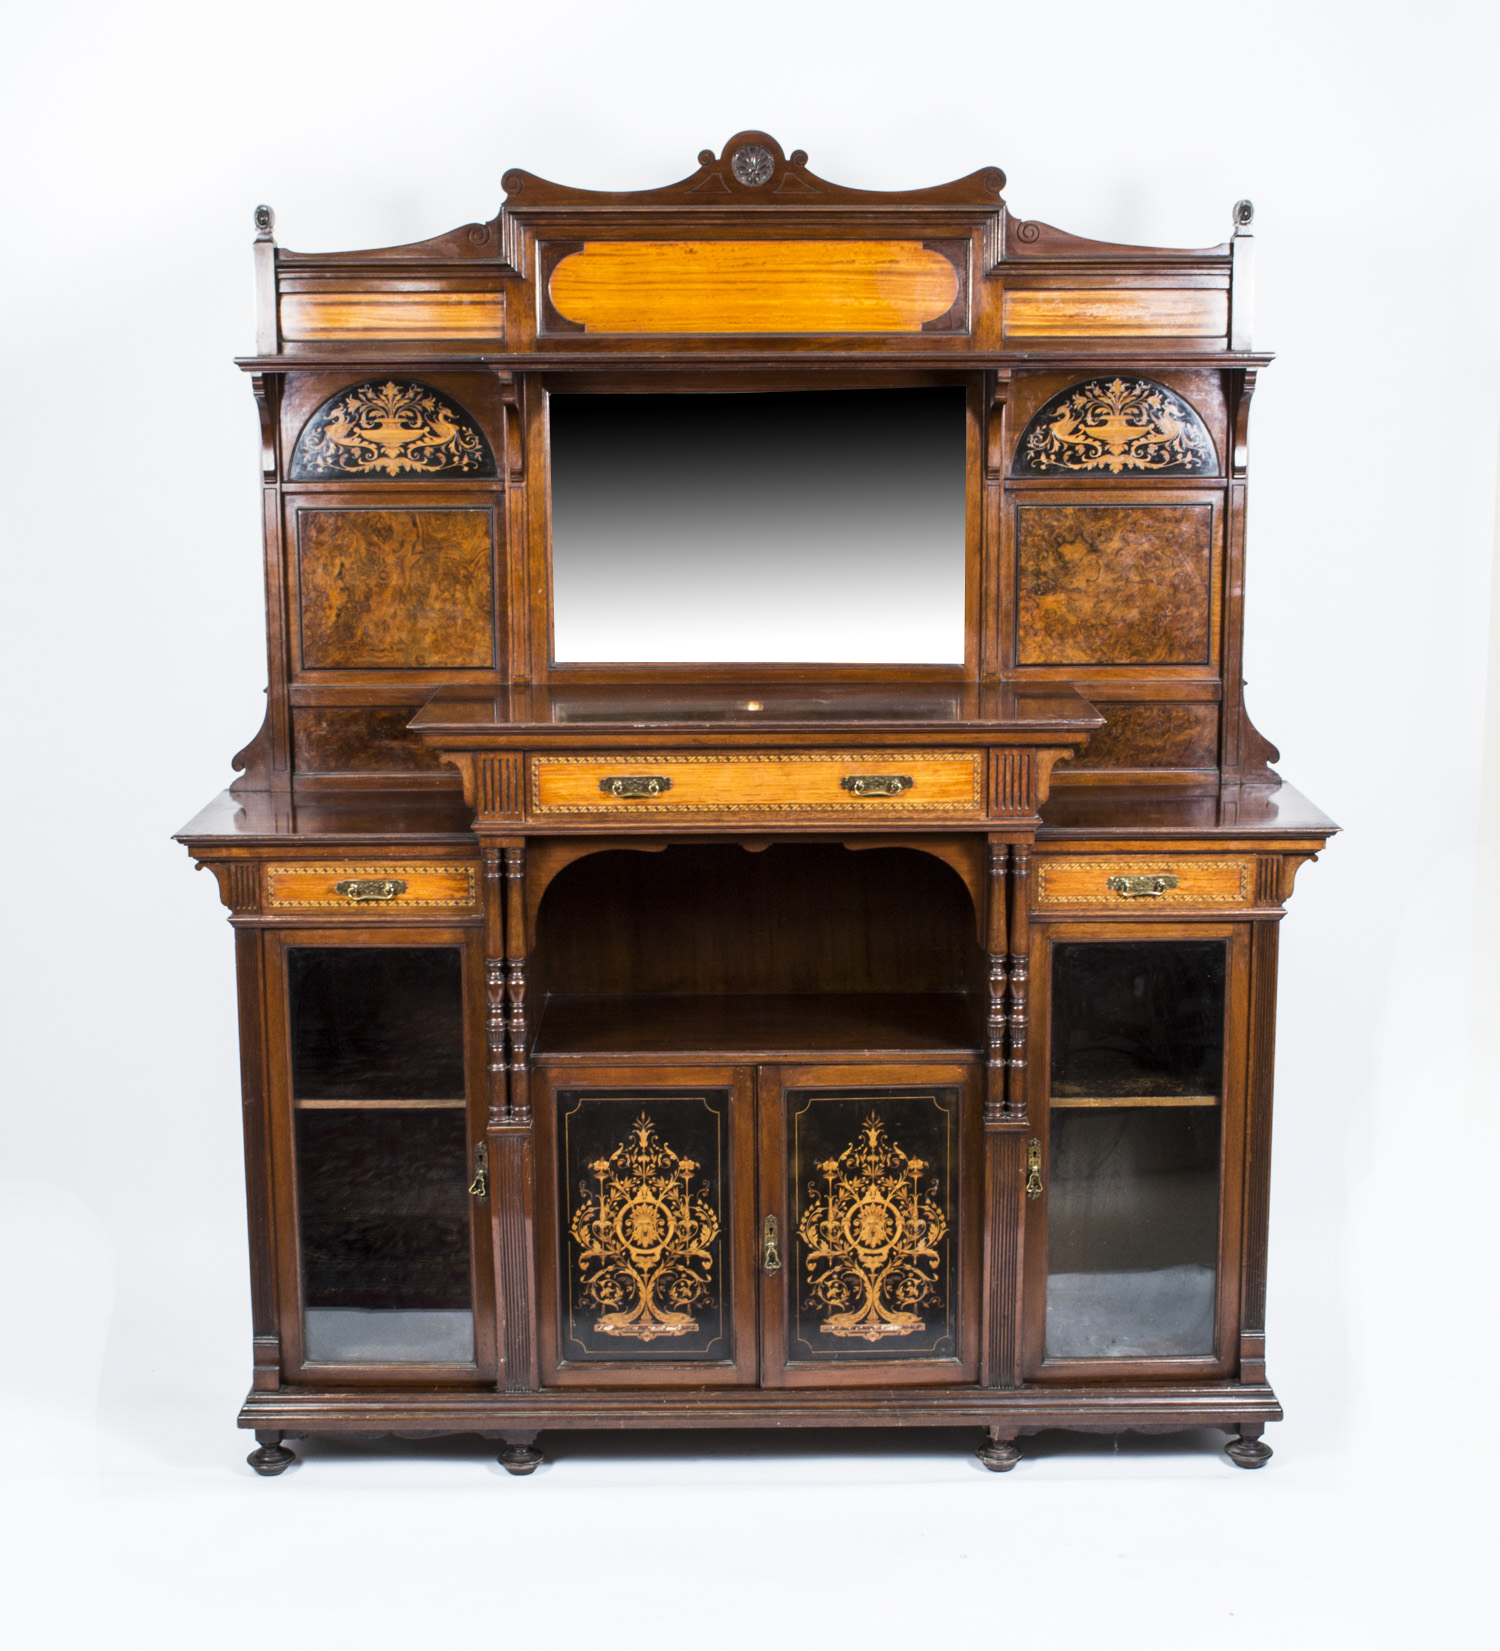 Antique edwardian inlaid cabinet by gillows for 1890 kitchen cabinets